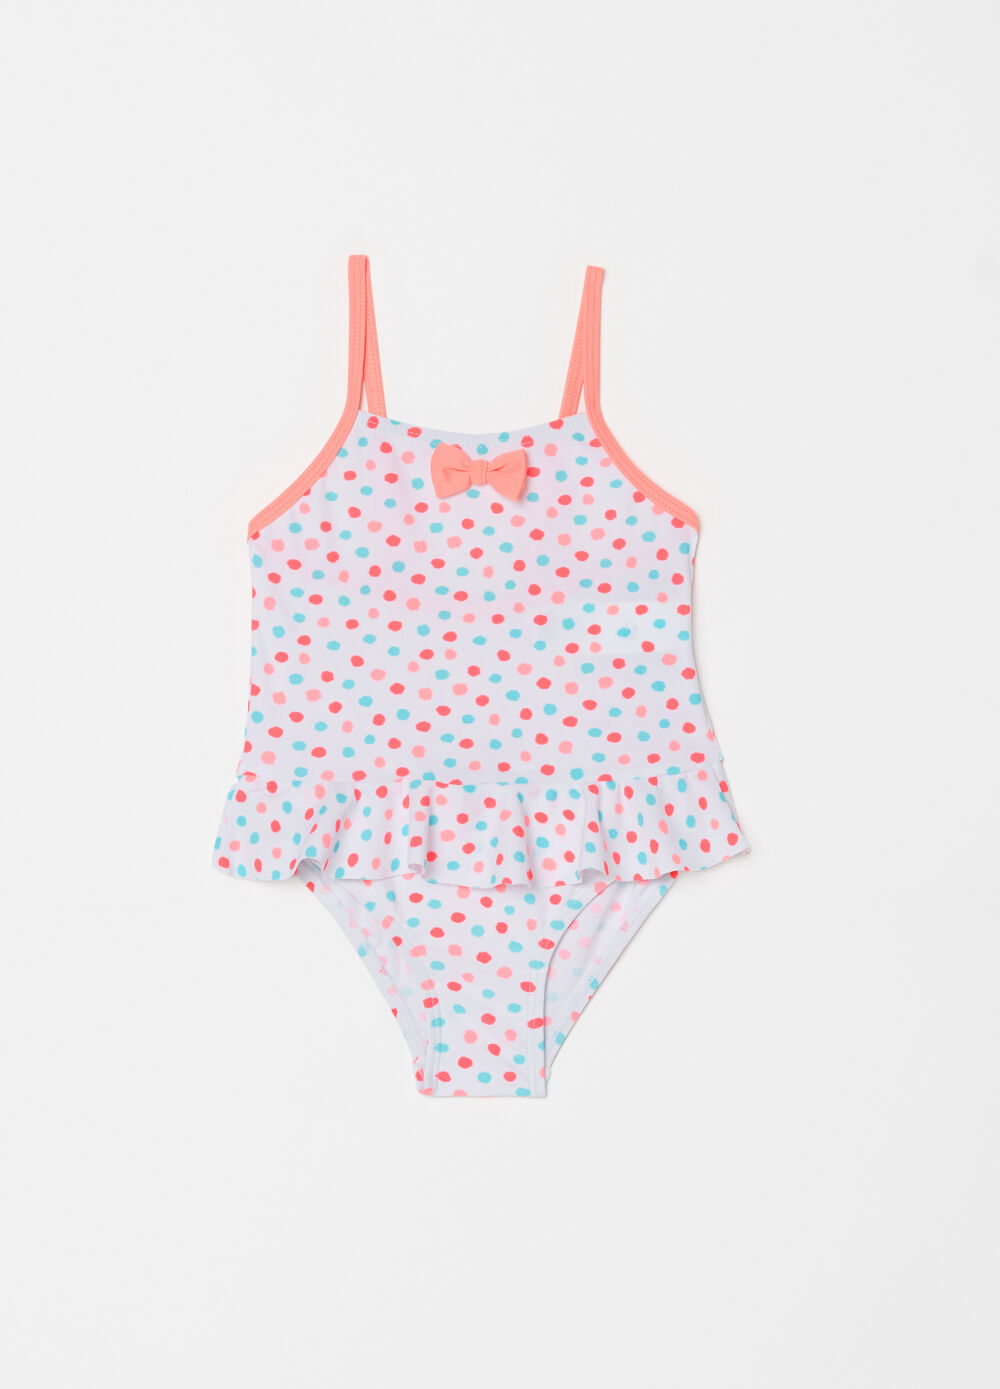 One-piece swimsuit with flounce and polka dot pattern